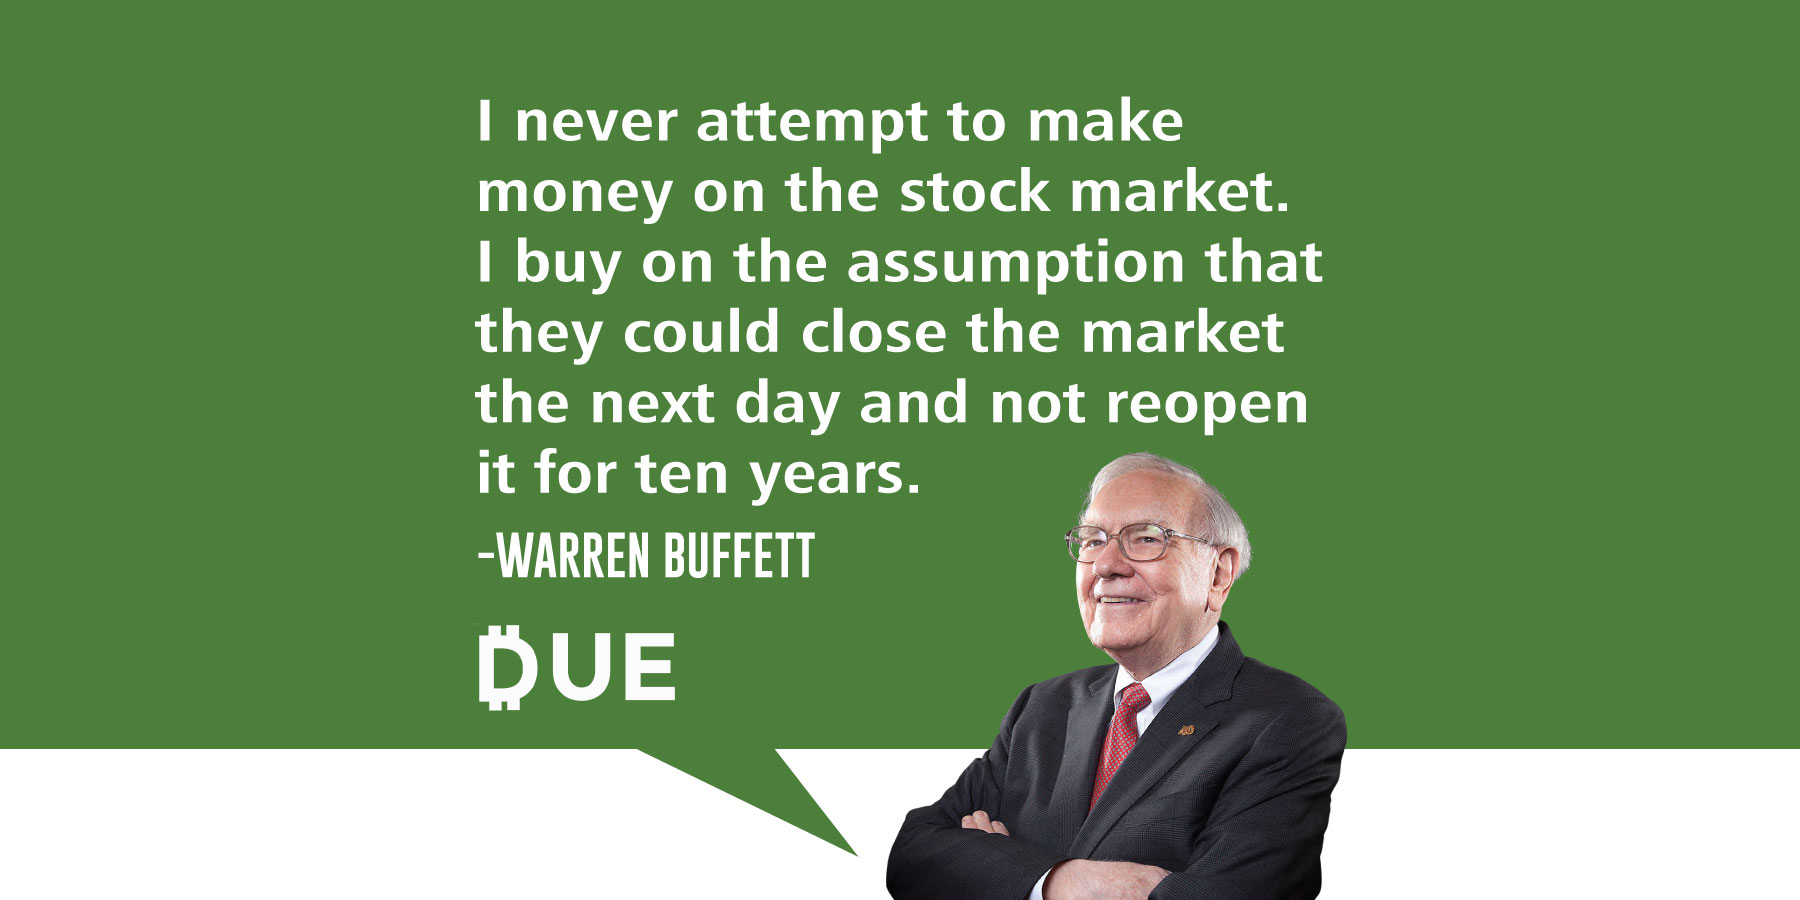 Warren Buffett Quote - Look For Quality, be Cautious